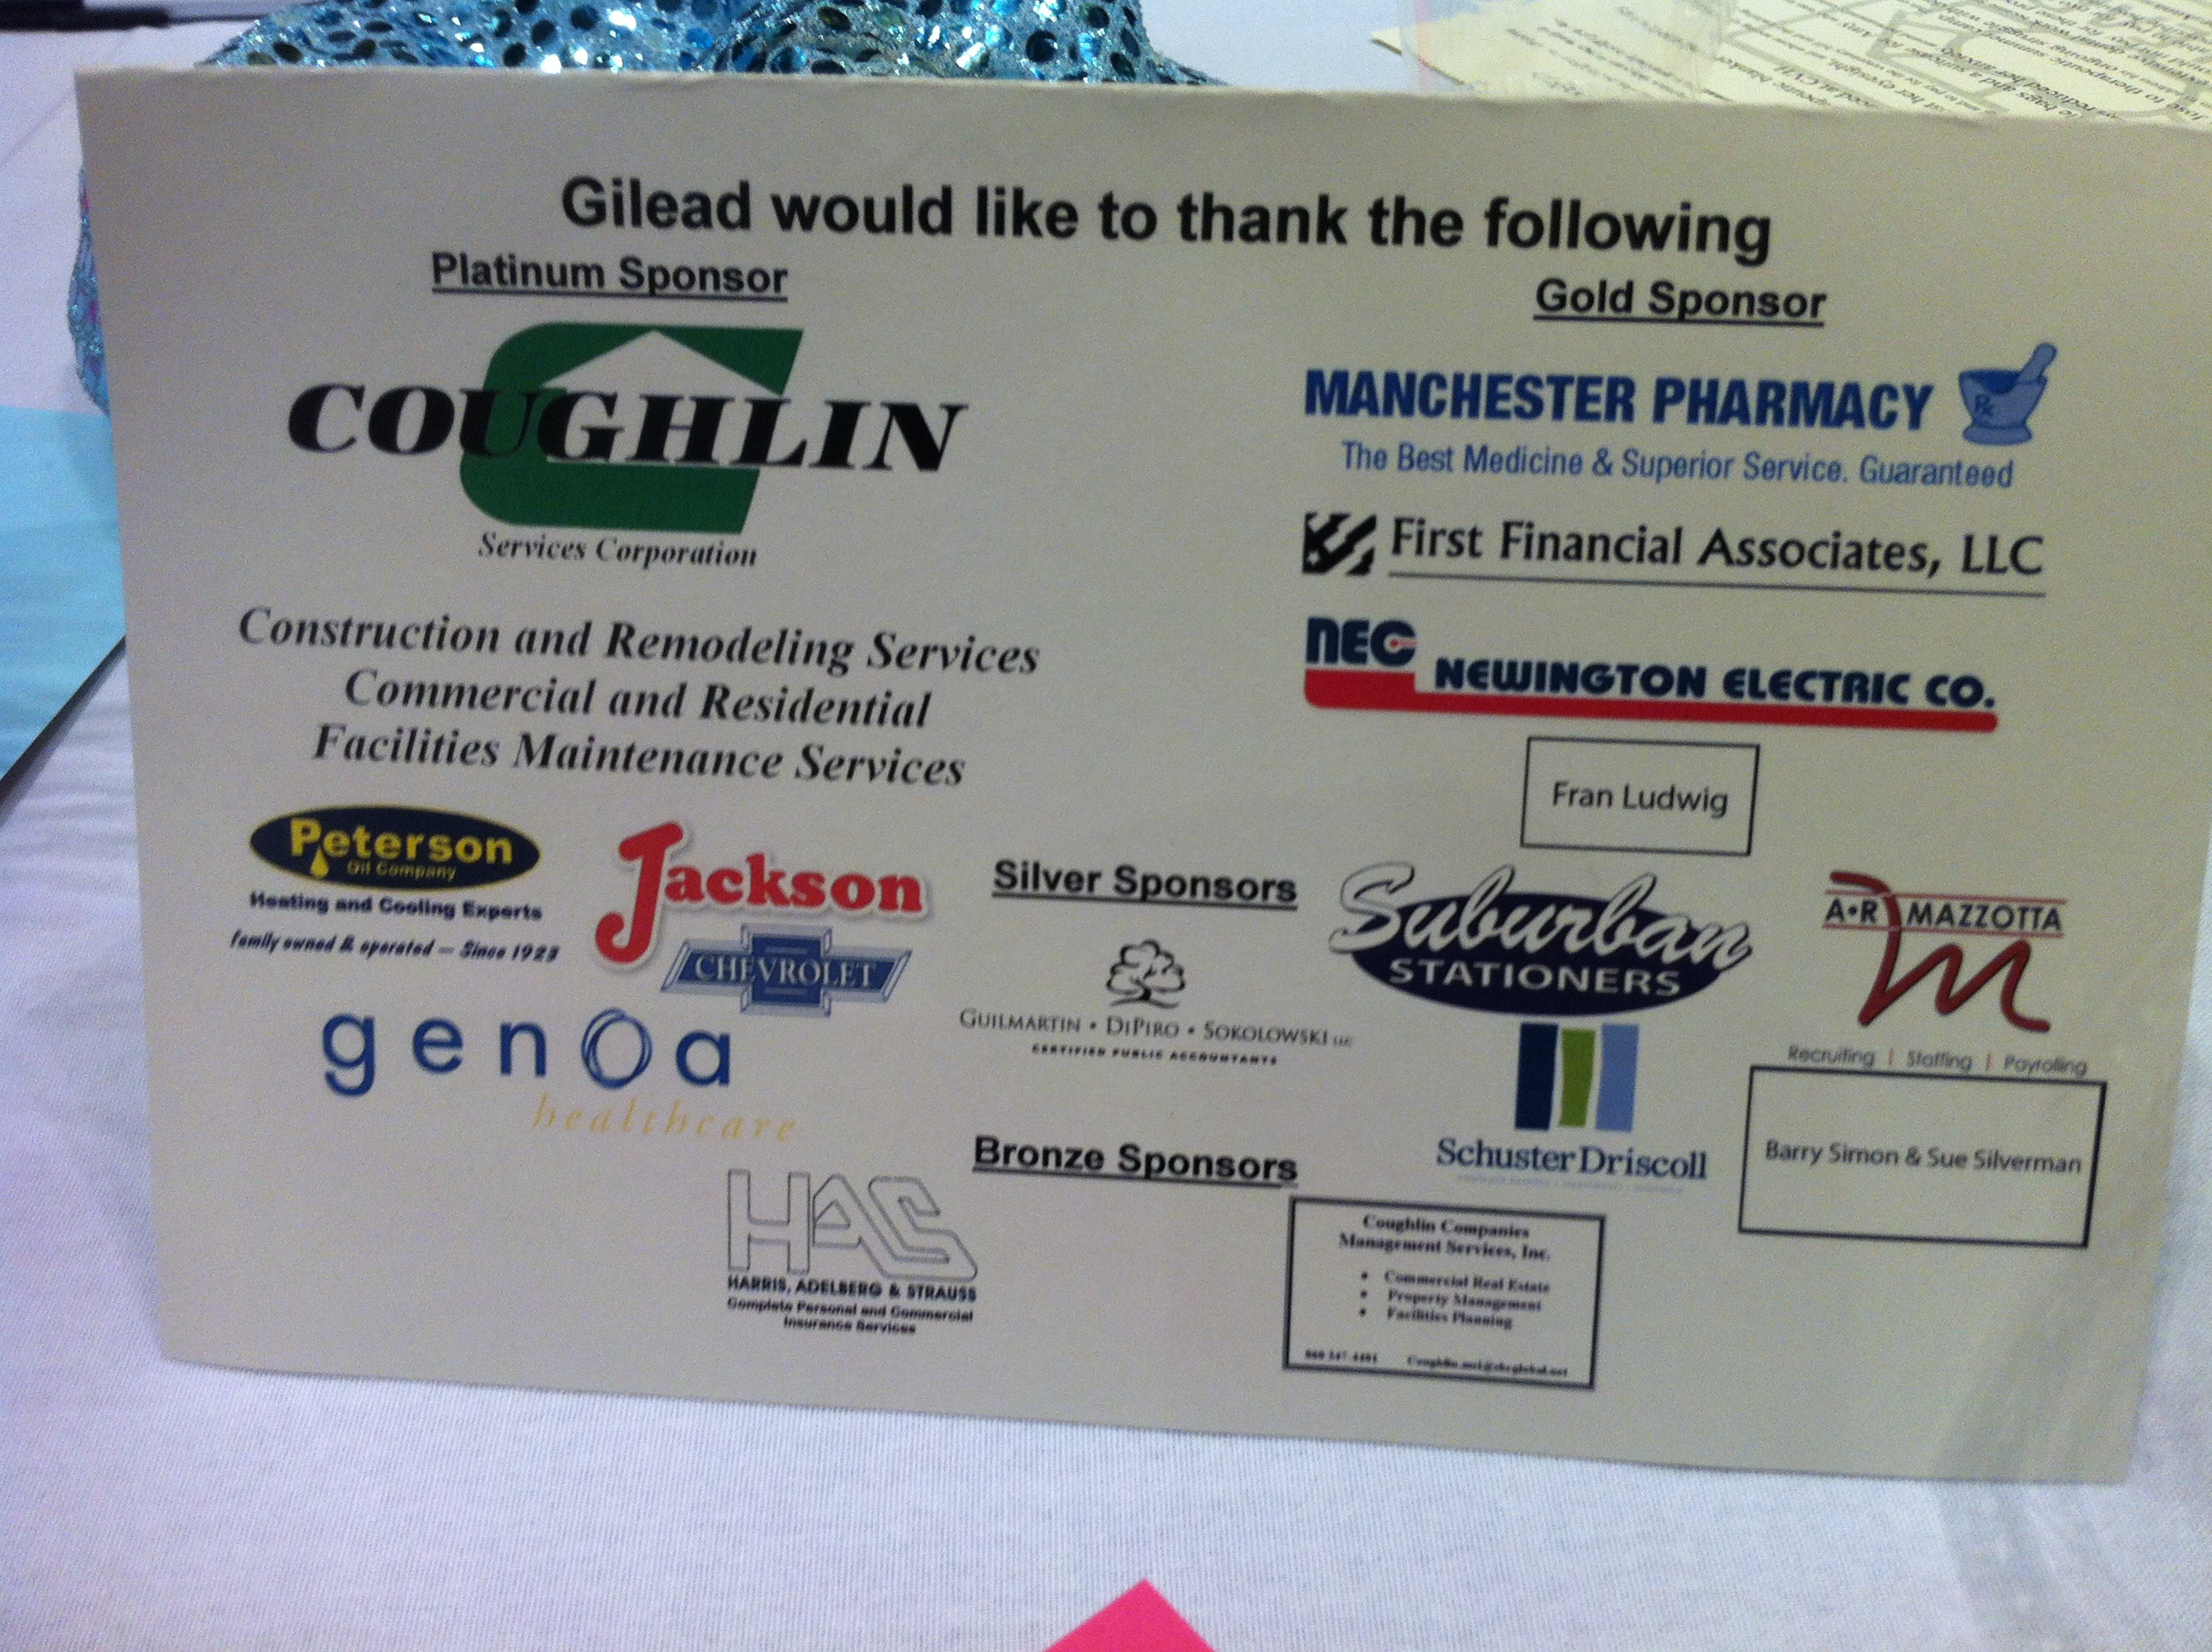 Coughlin Service Corp of Middletown CT becomes Gold Sponsor of Gilead Community Services 2012 Quizine for a Cause